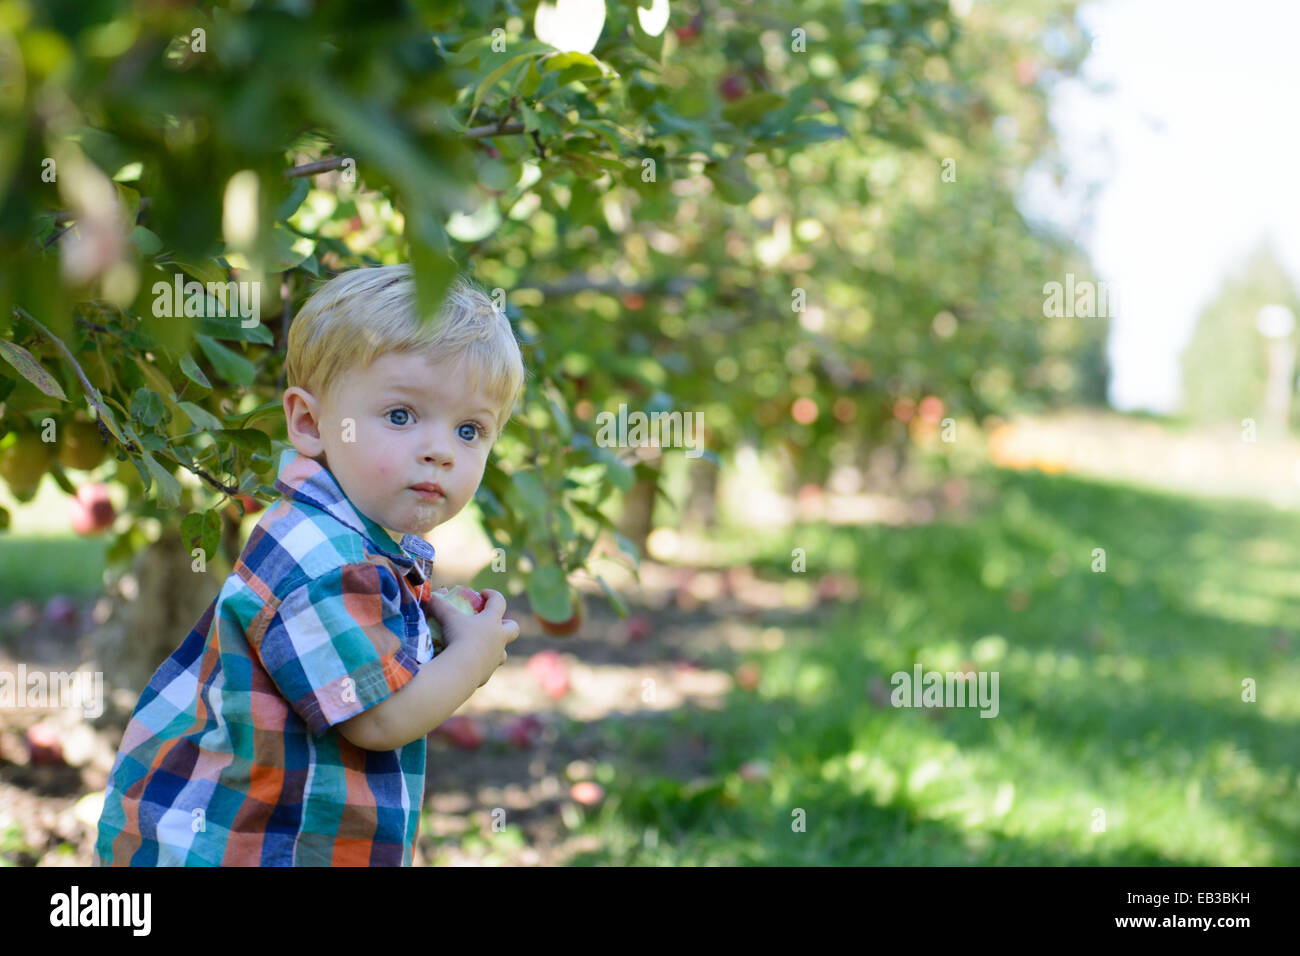 Boy in an orchard picking apples - Stock Image